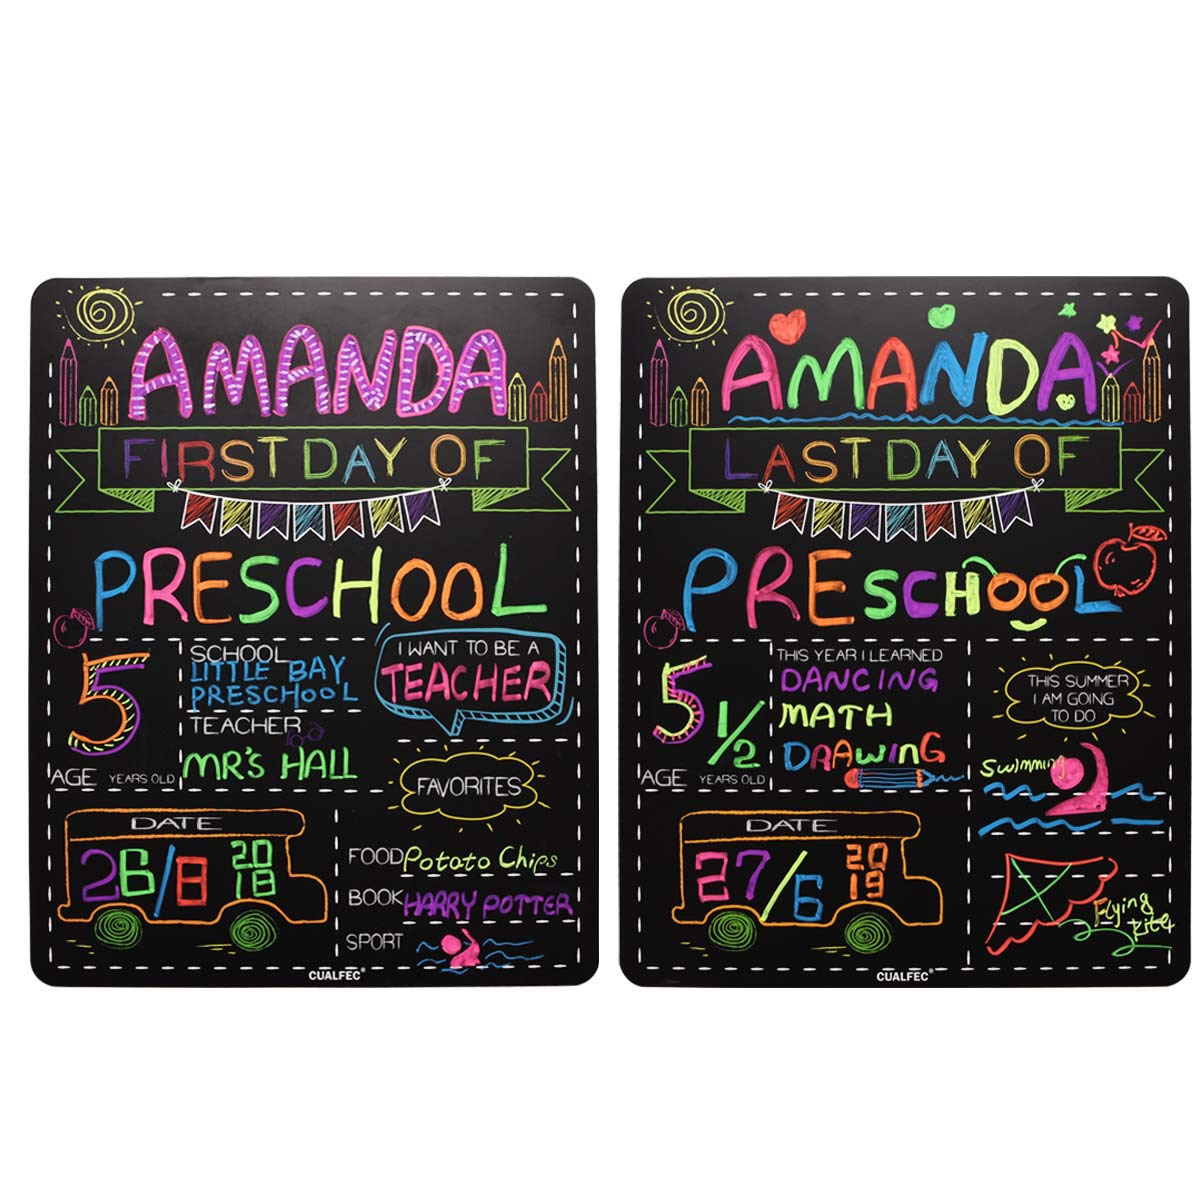 """Personalized First Day and Last Day of School Sign 13"""" x 16"""" Large Chalkboard Style Photo Prop Back to School Supplies - 2 Pcs"""